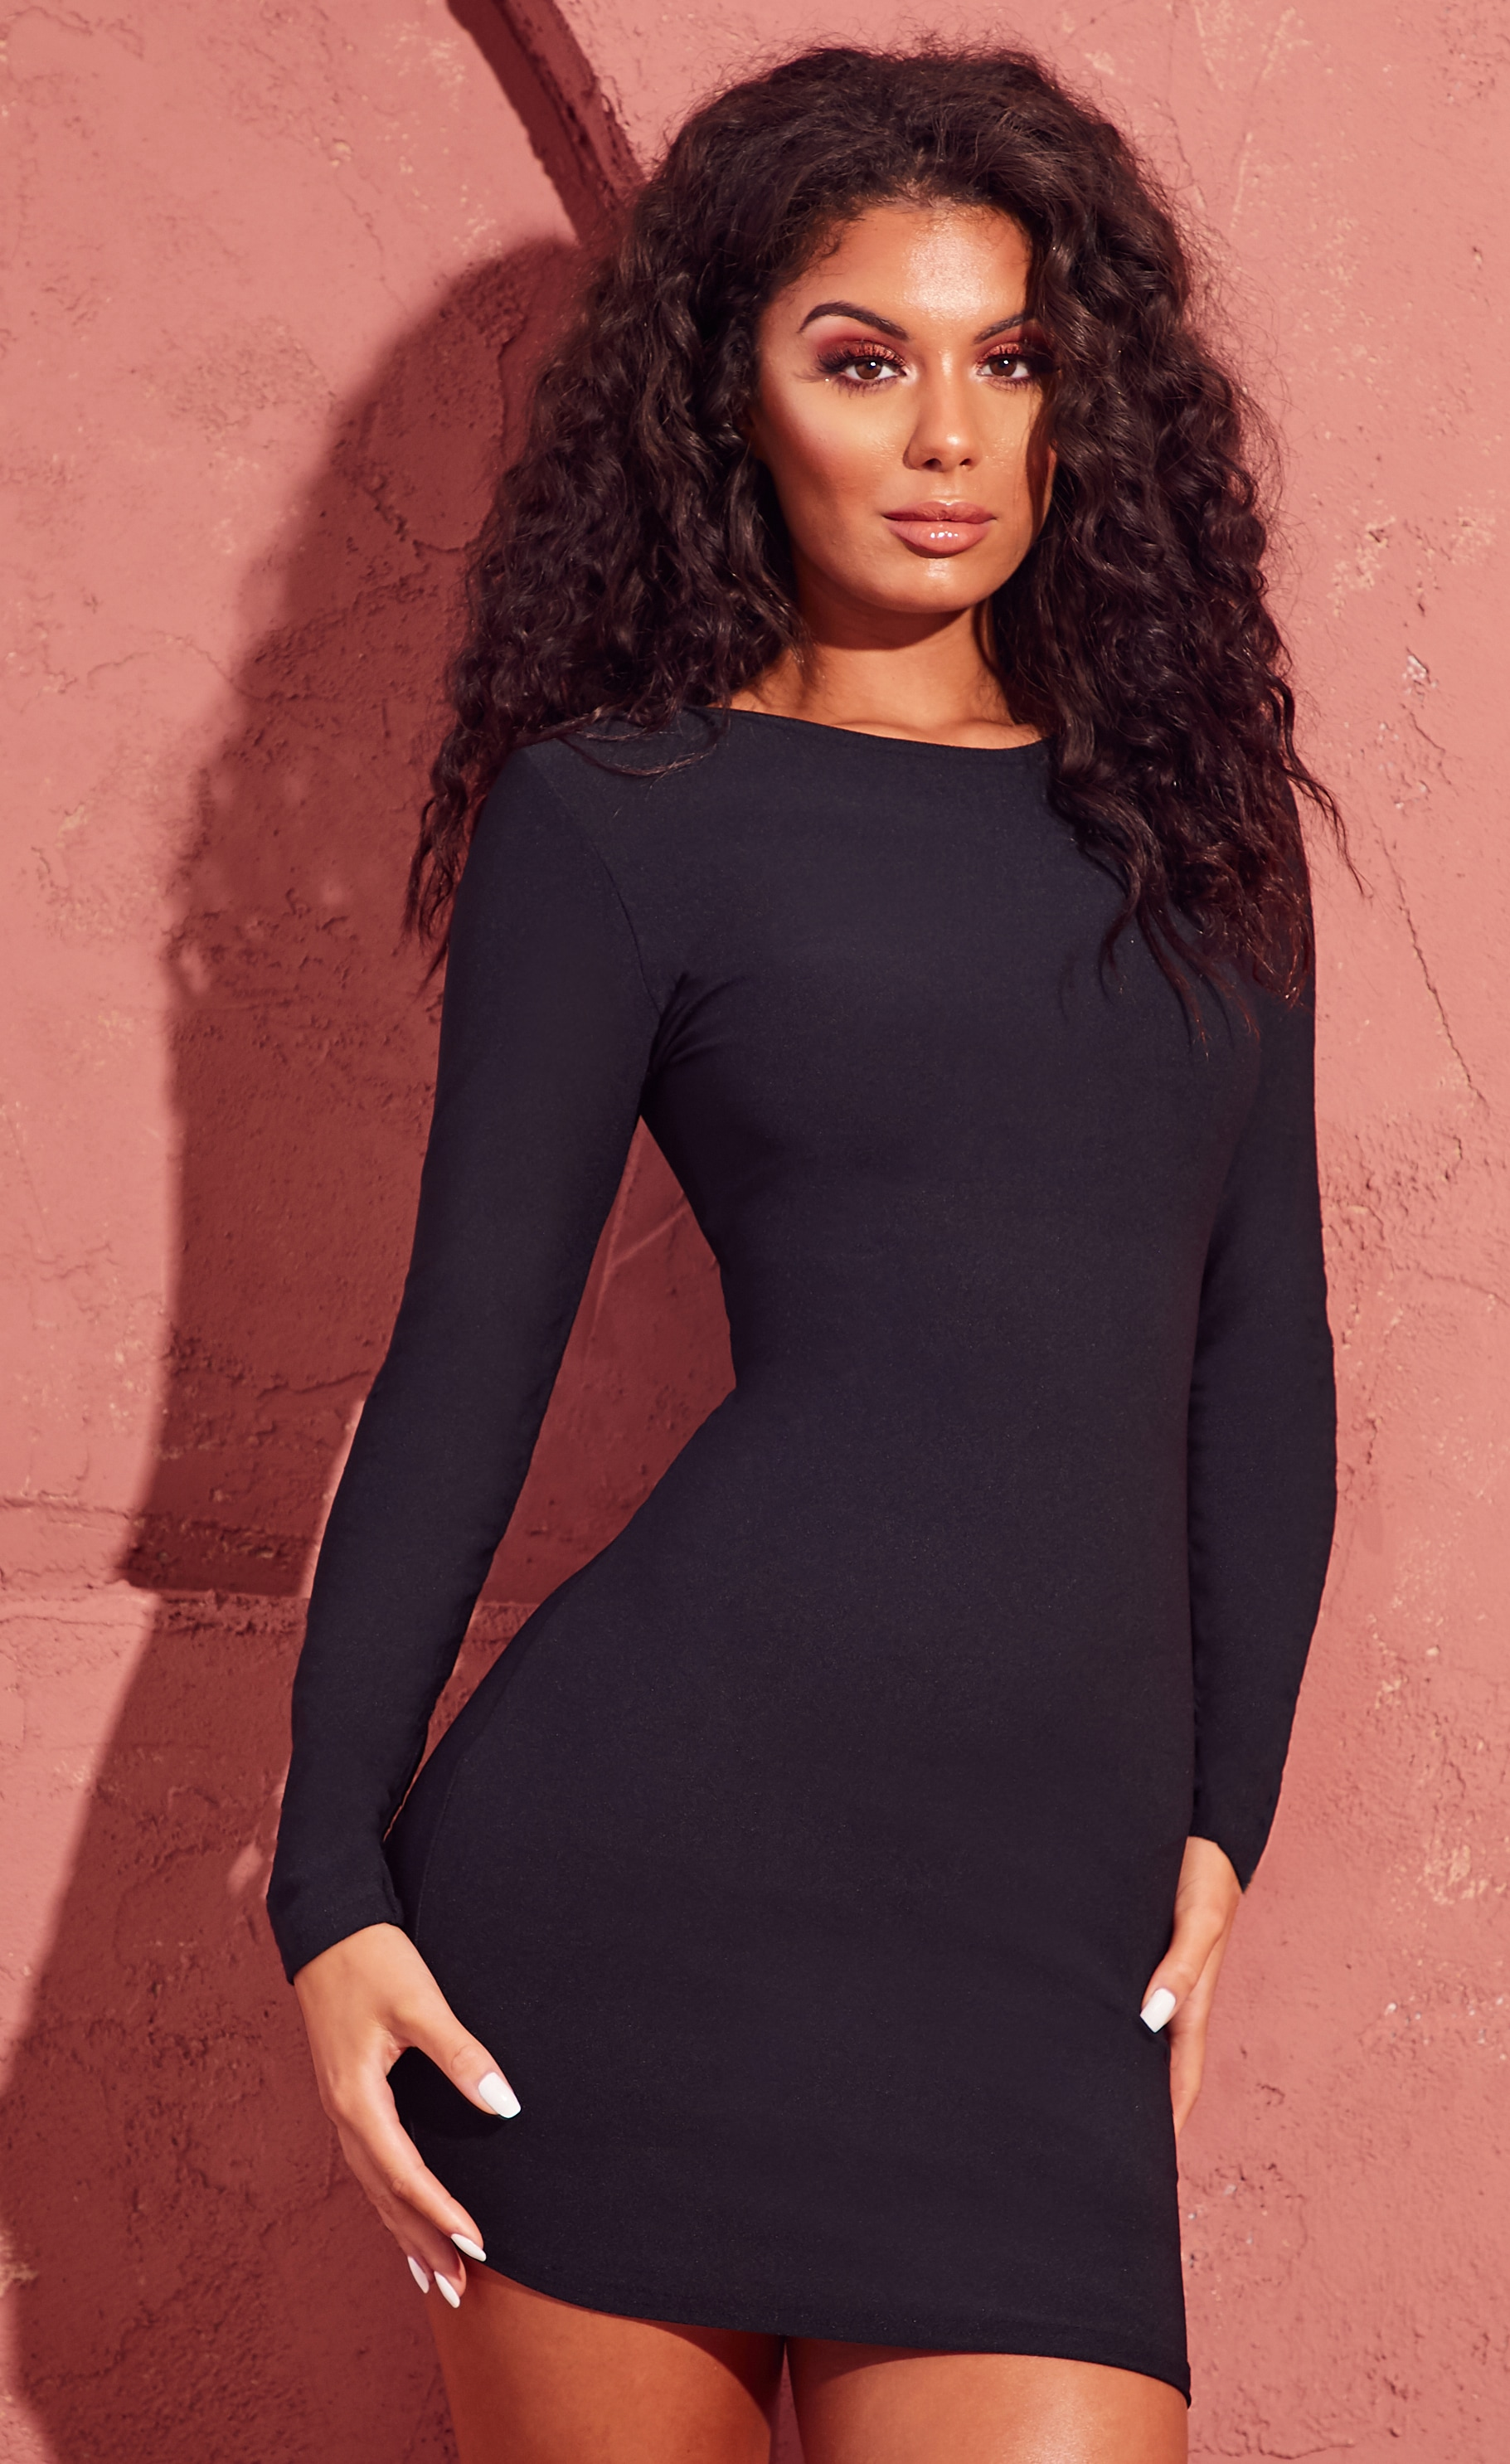 Black Long Sleeve Bodycon Dress 4